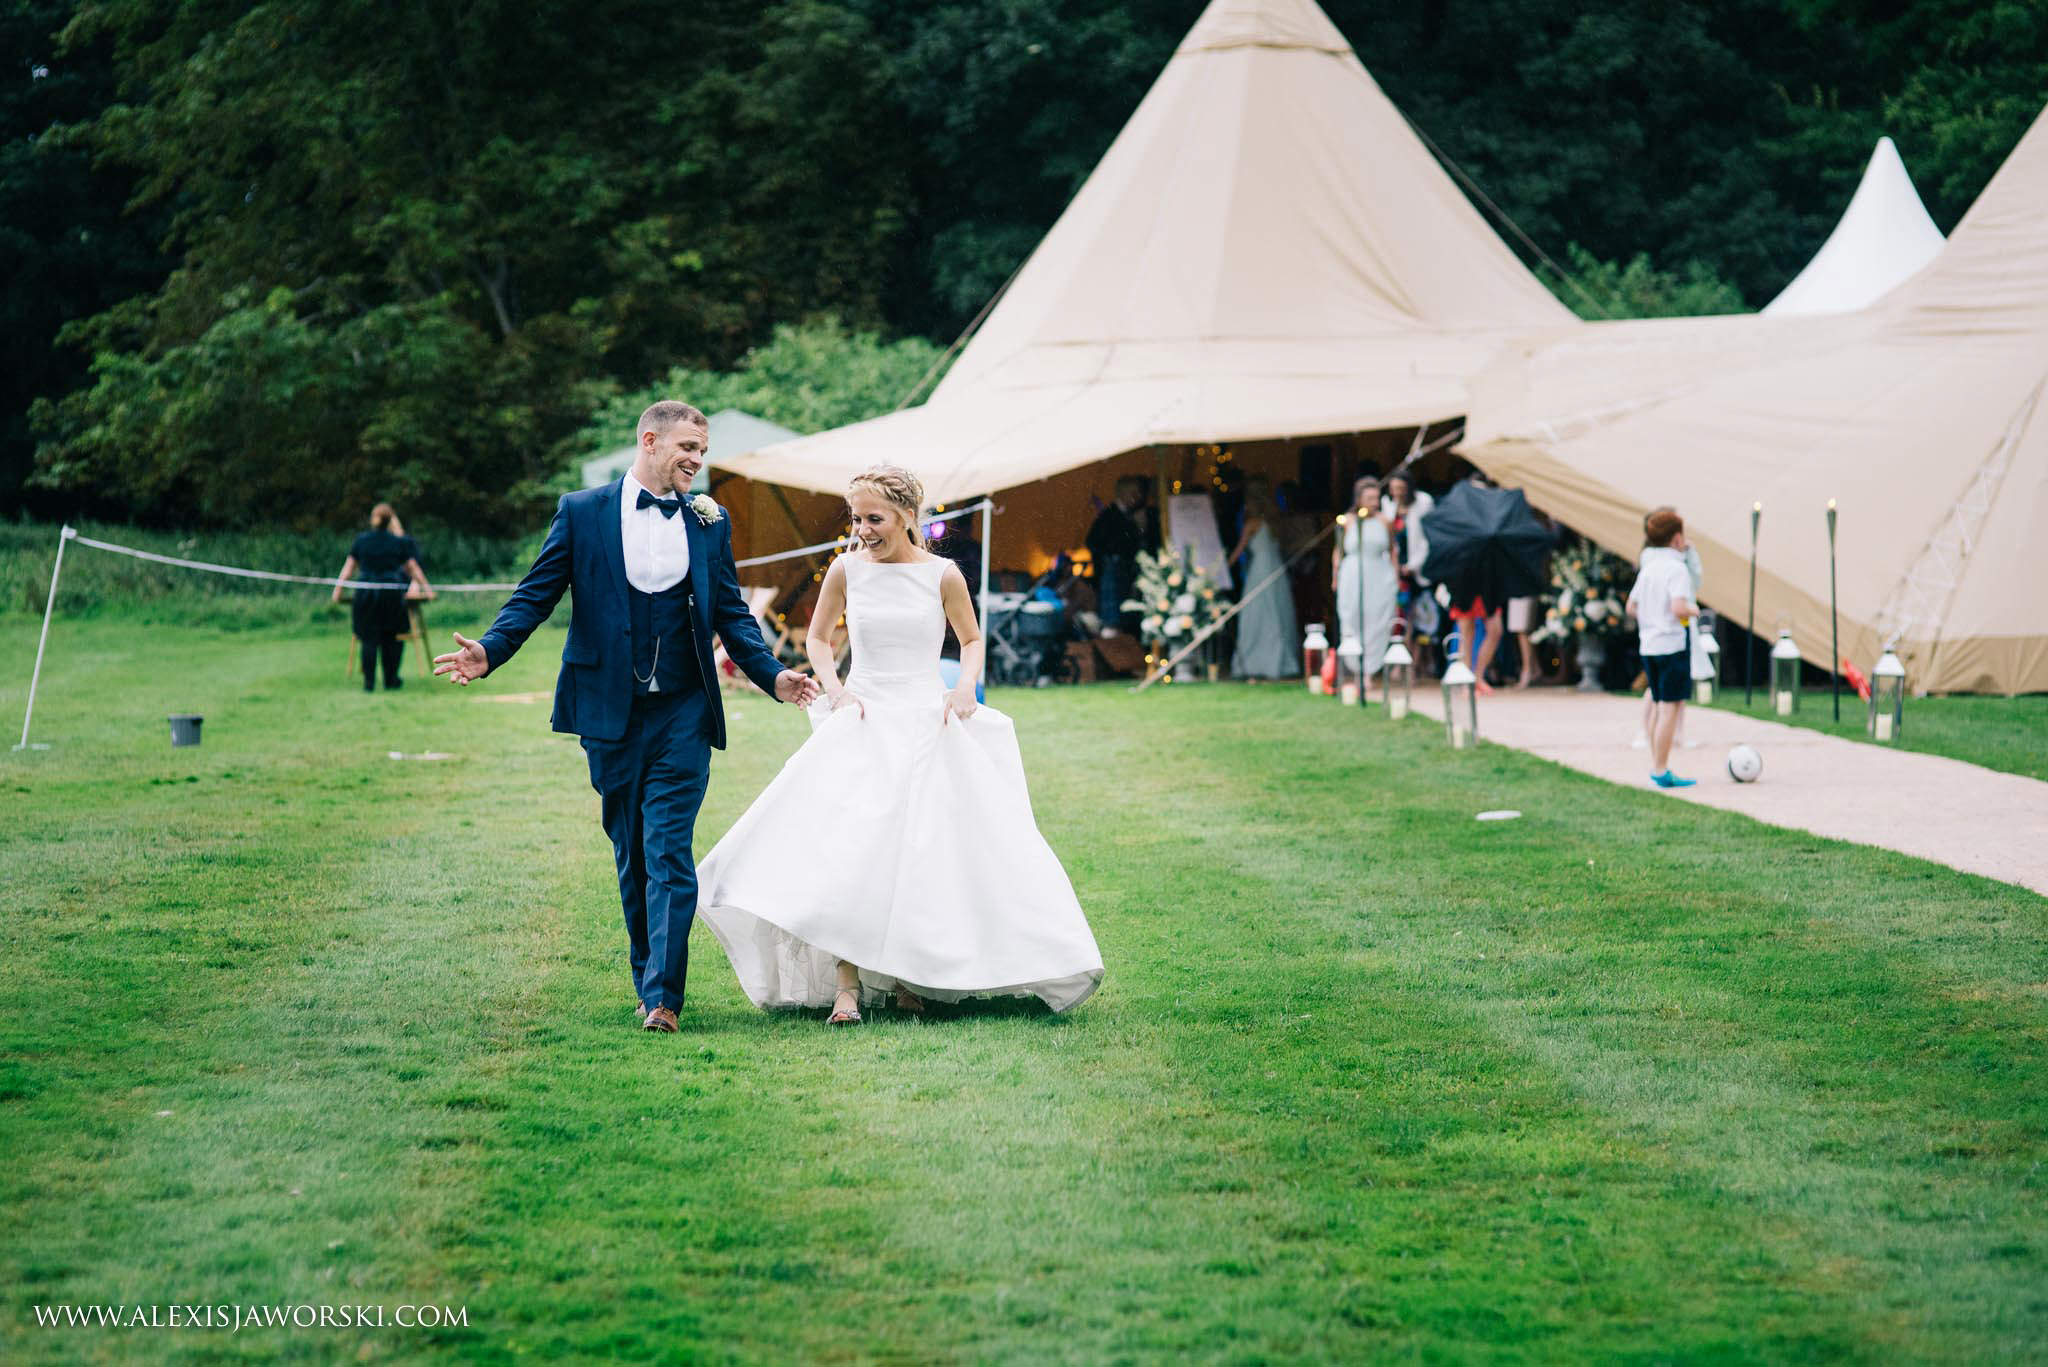 candid portrait of bride and groom with tipi in background